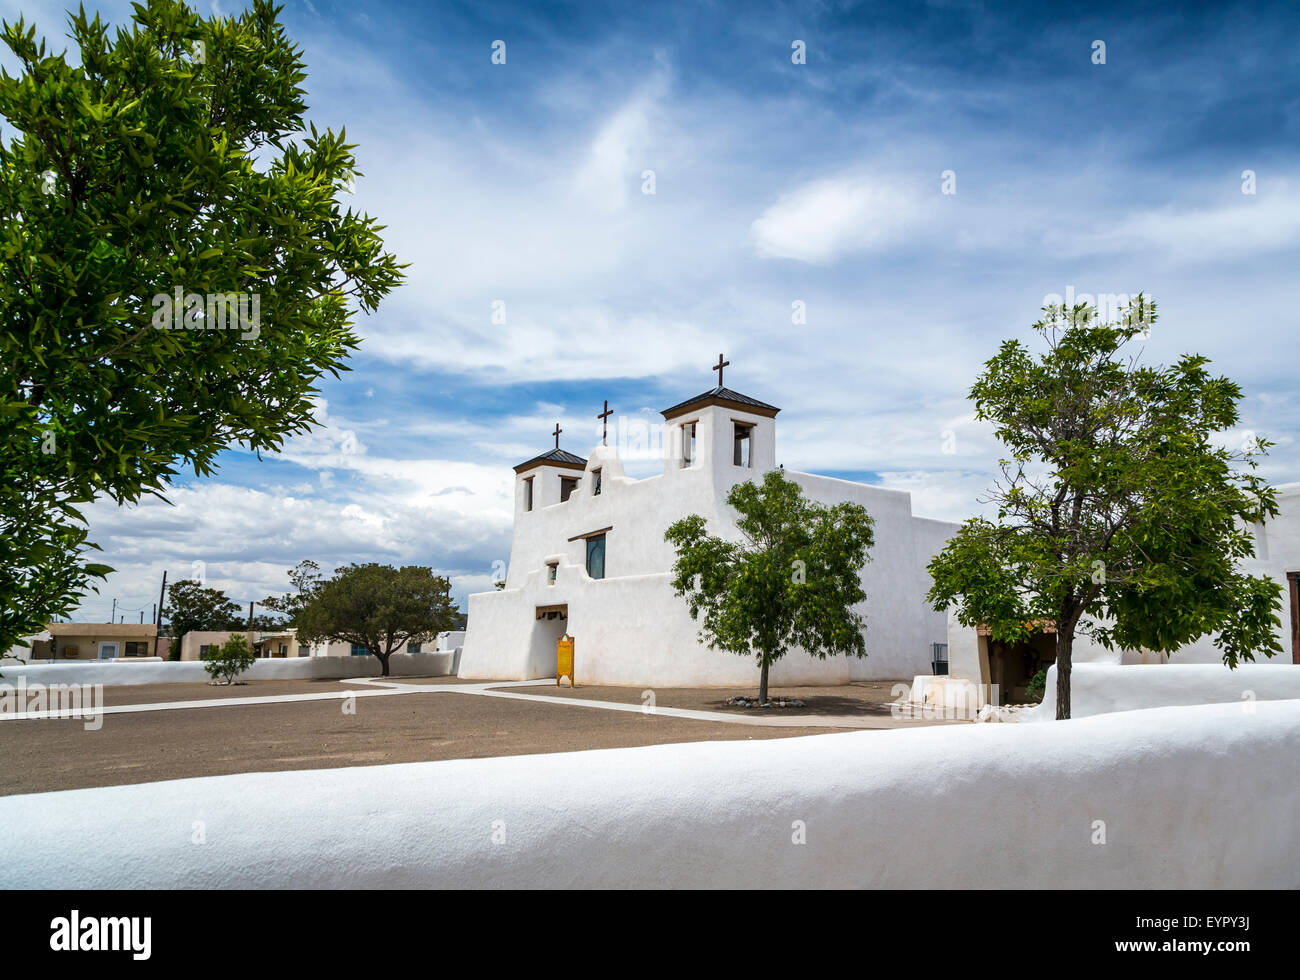 The St. Augustine Church in the Pueblo of Isleta, New Mexico, USA. Stock Photo